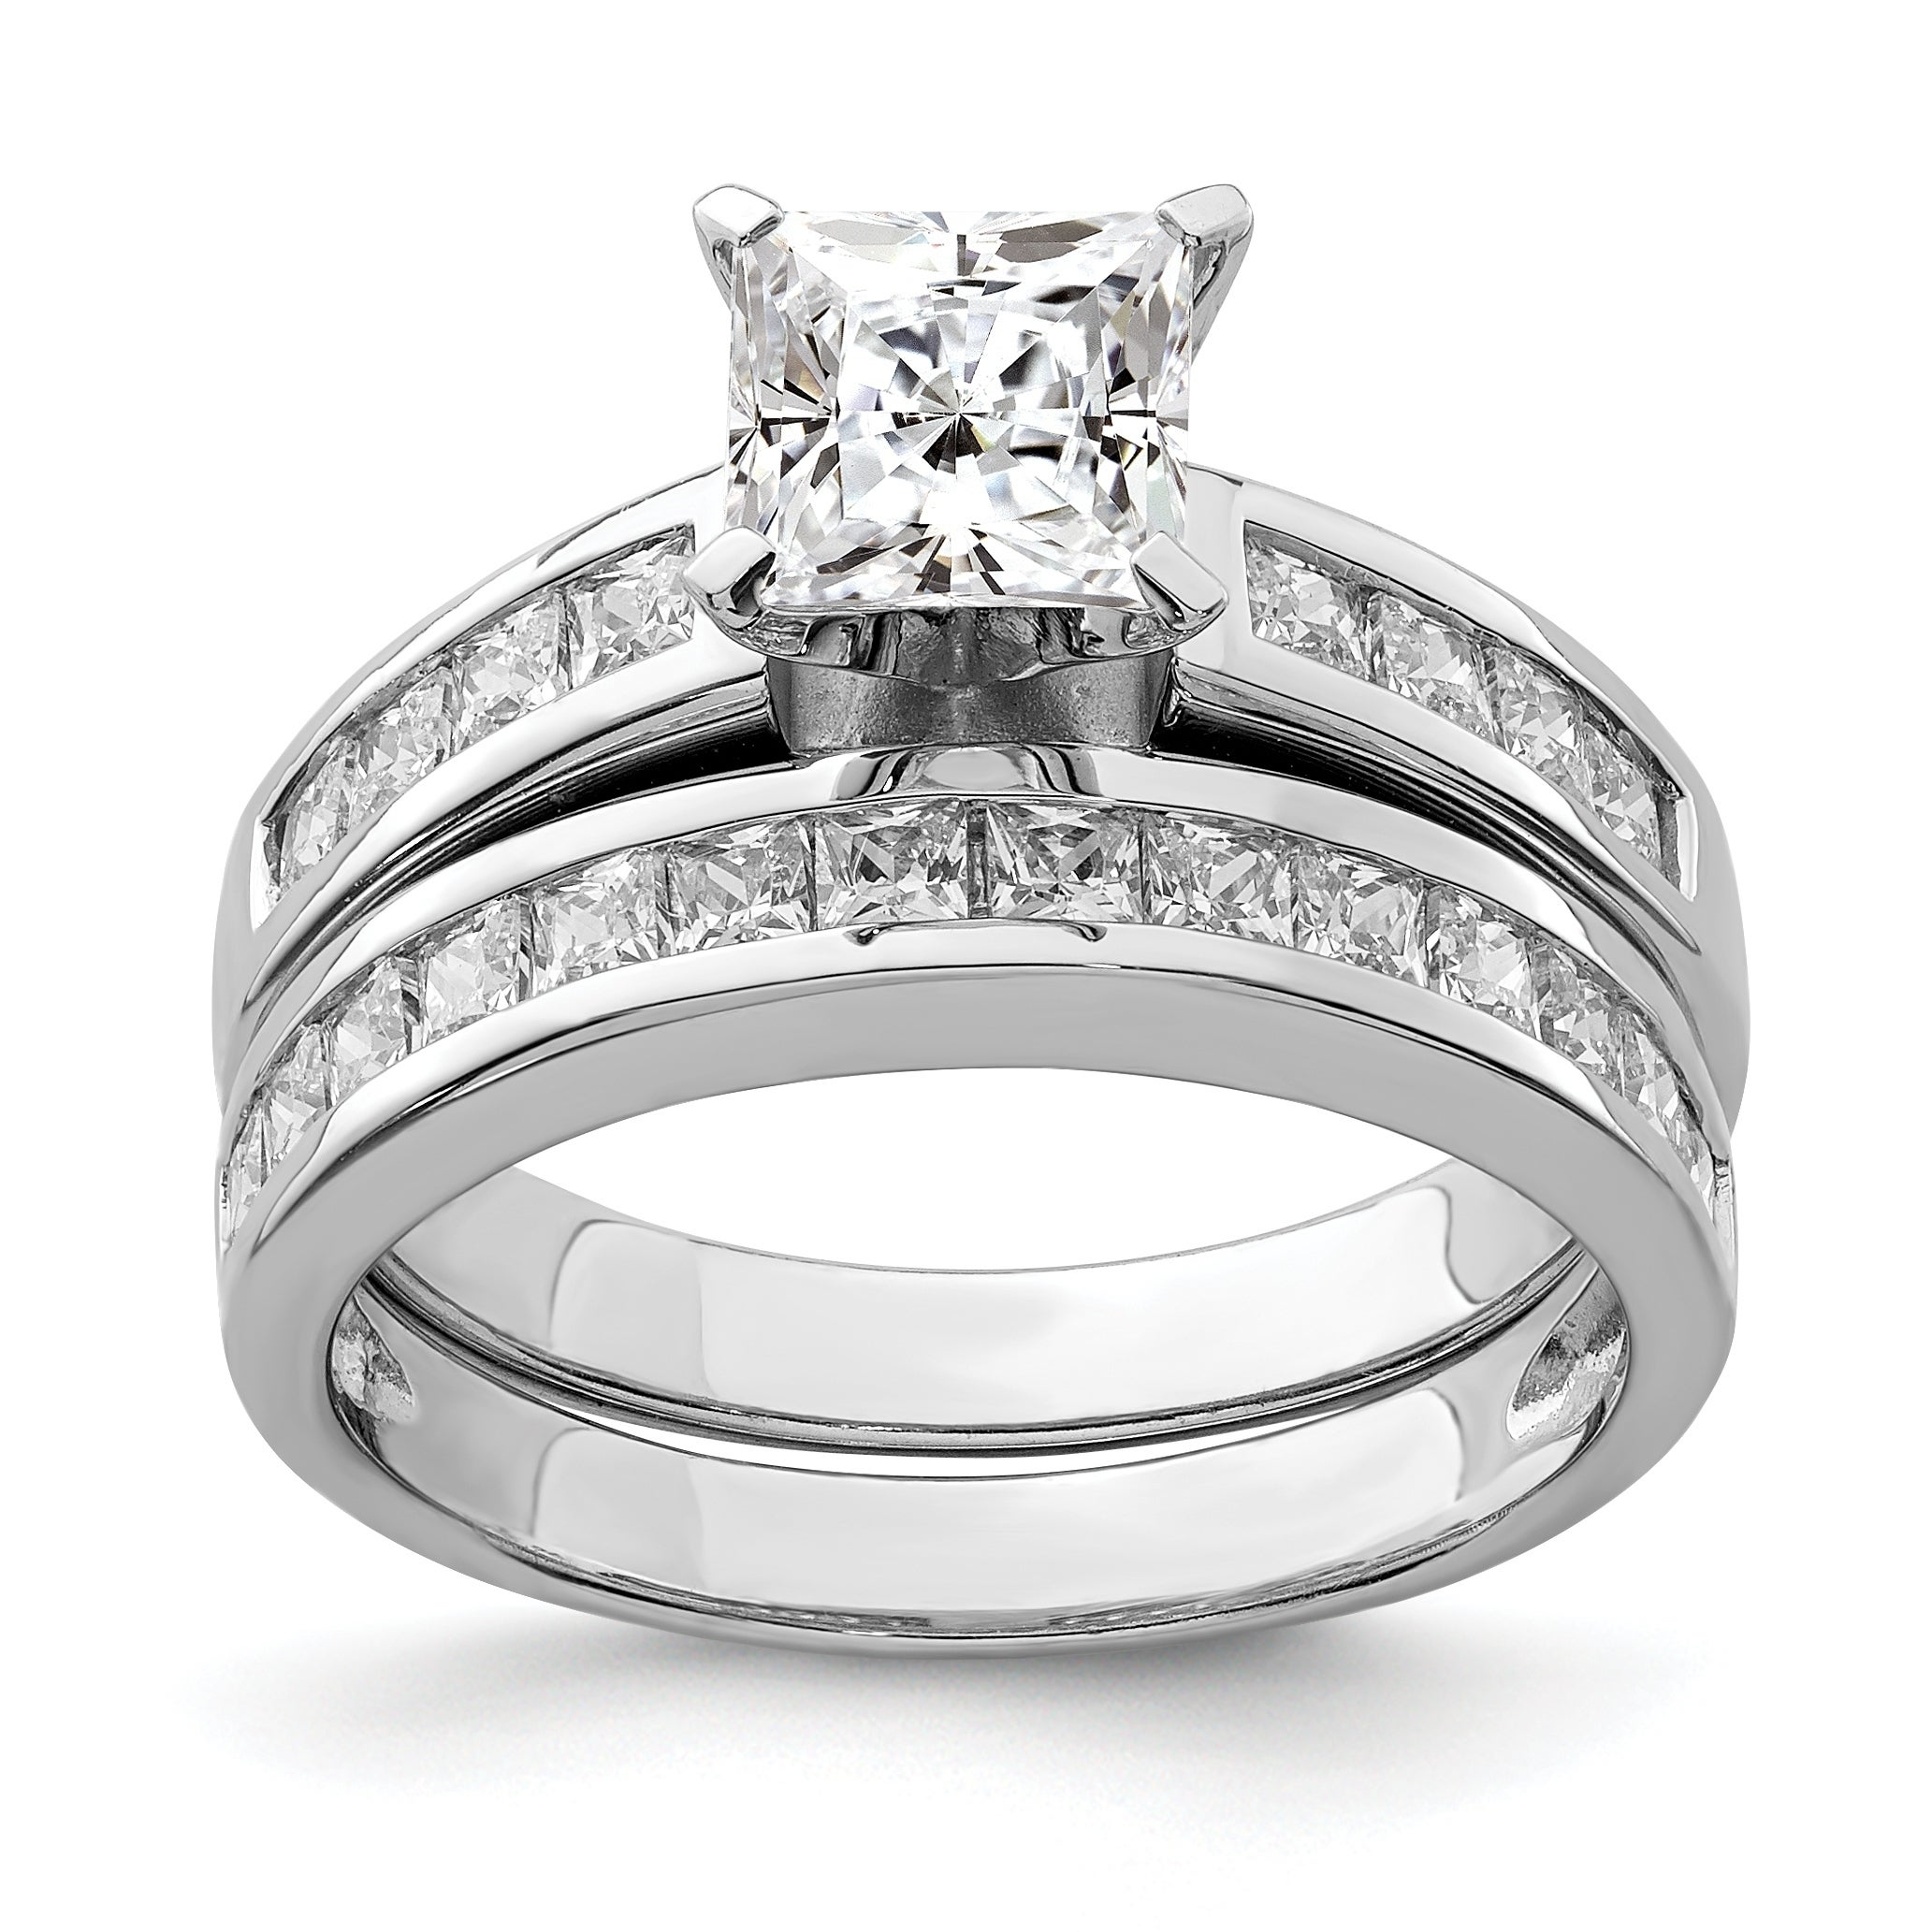 Sterling Silver Rhodium-plated 2-Piece CZ Size 8 Wedding Set Ring